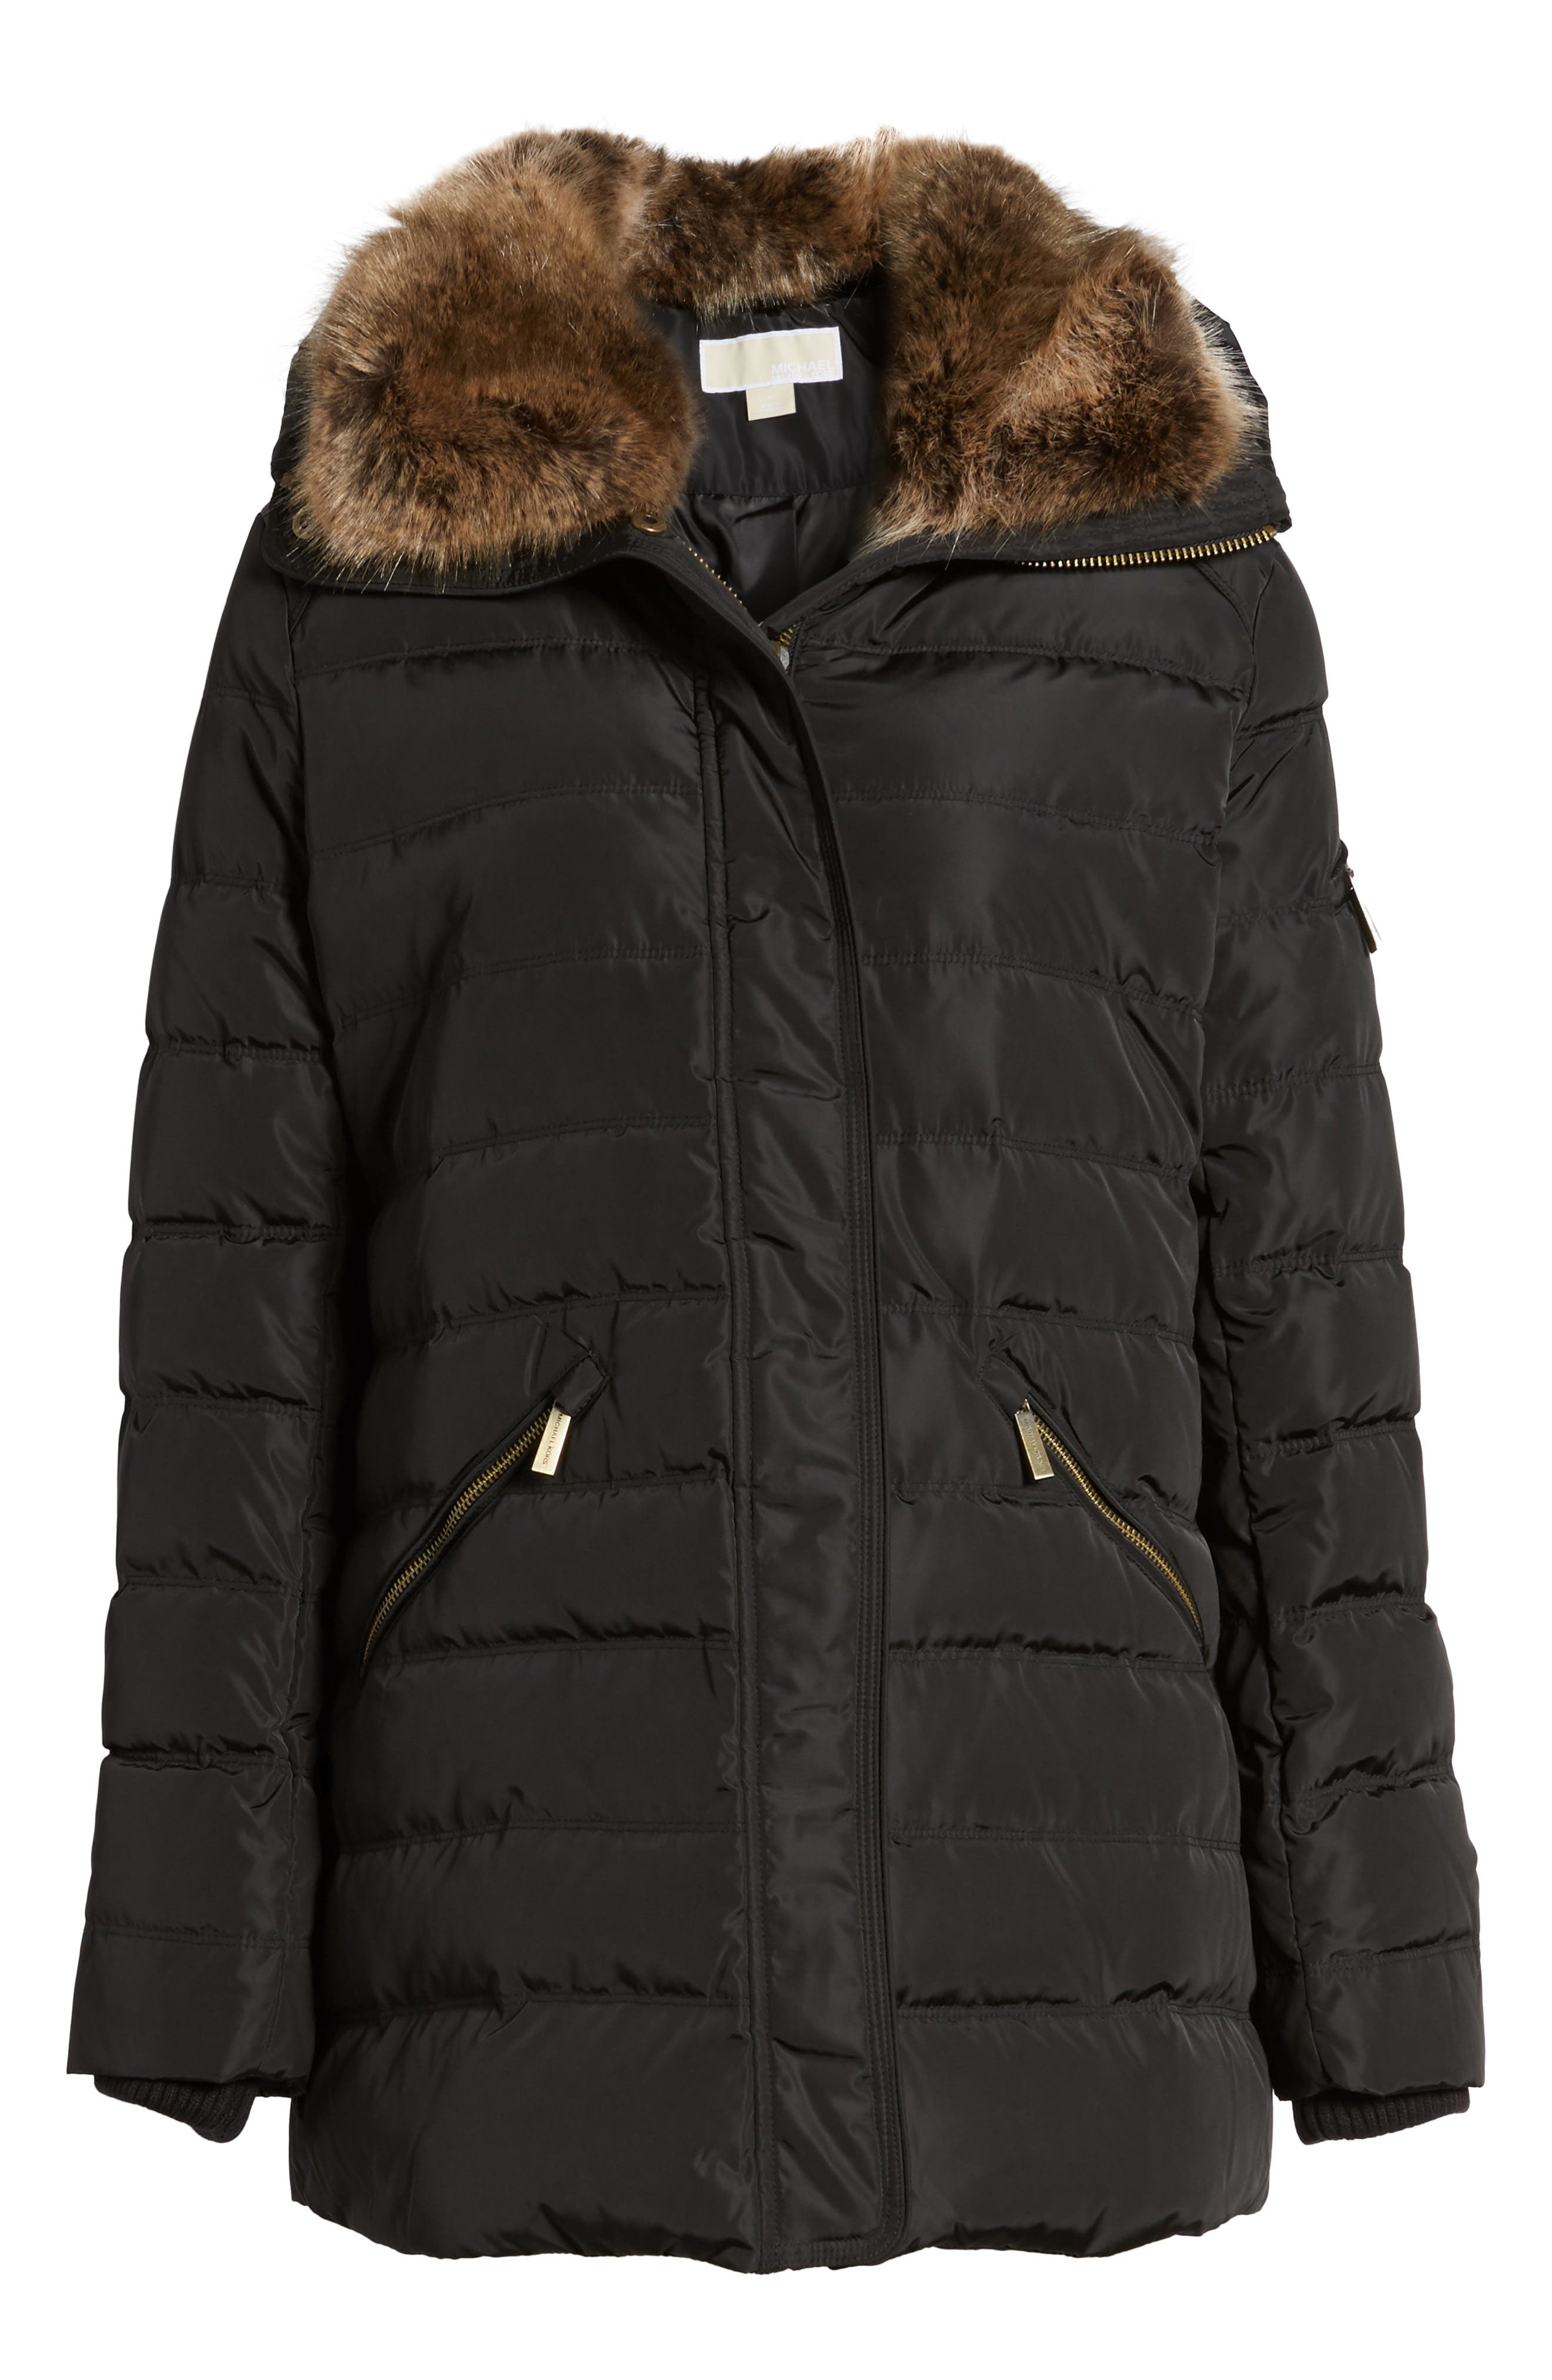 Hooded Coat with Faux Fur Trim,                             Alternate thumbnail 5, color,                             001